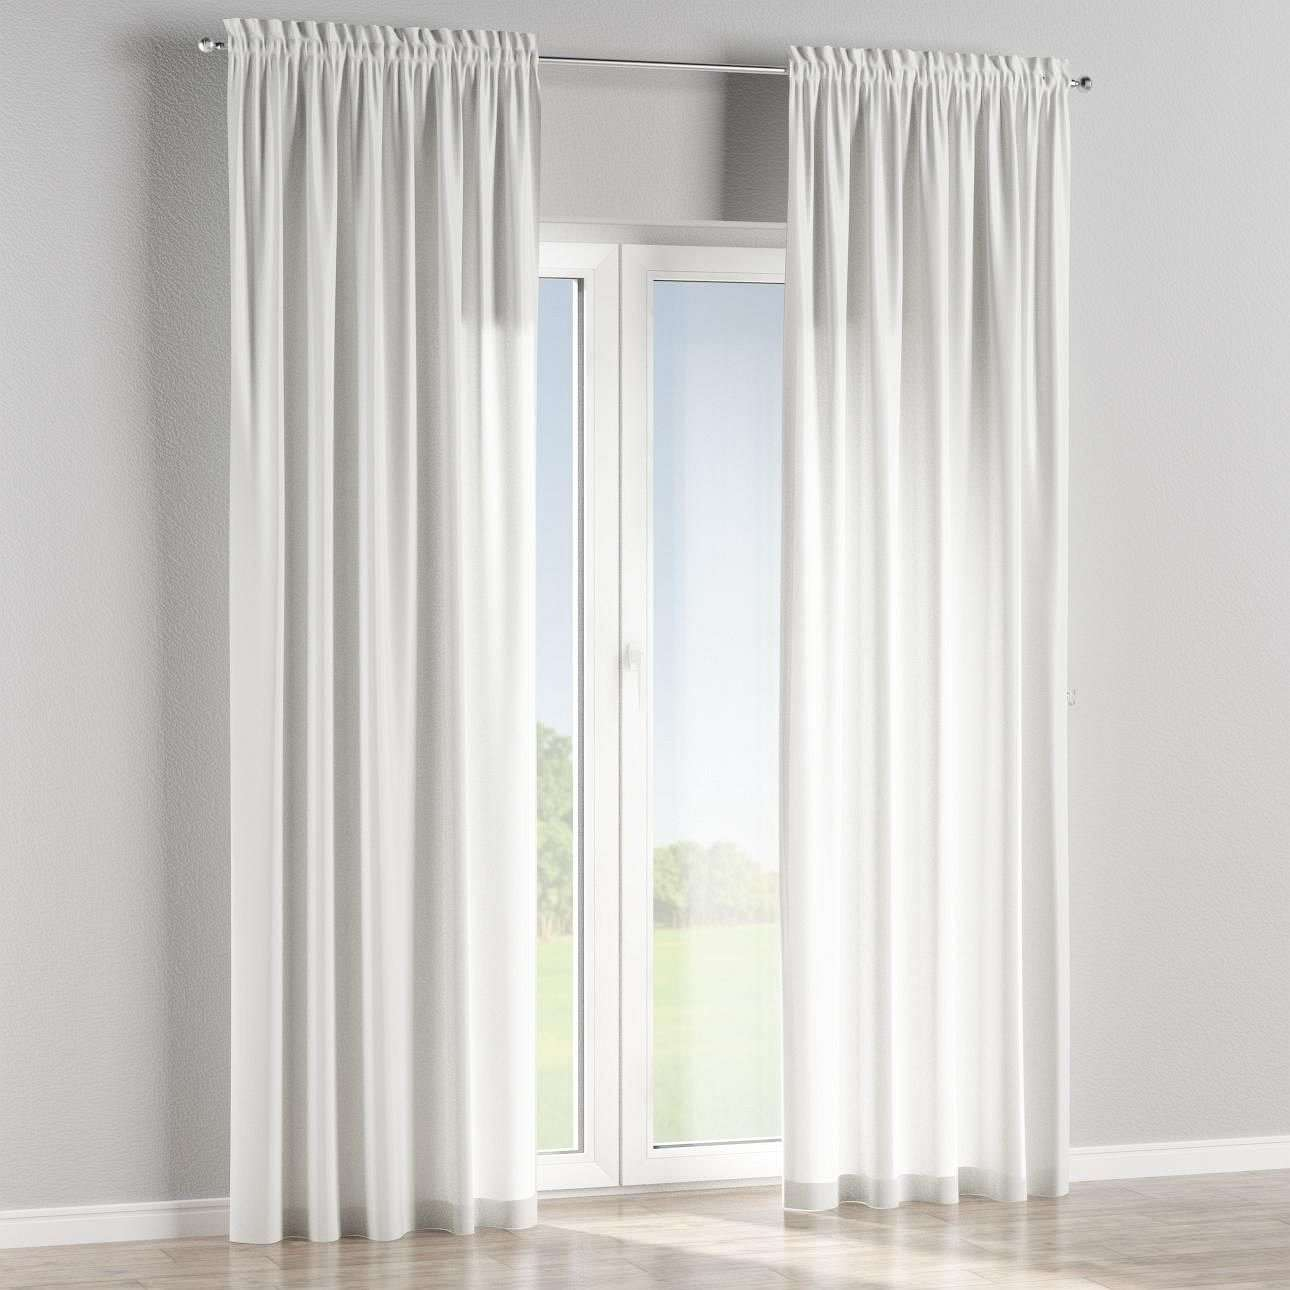 Slot and frill curtains in collection SALE, fabric: 136-60